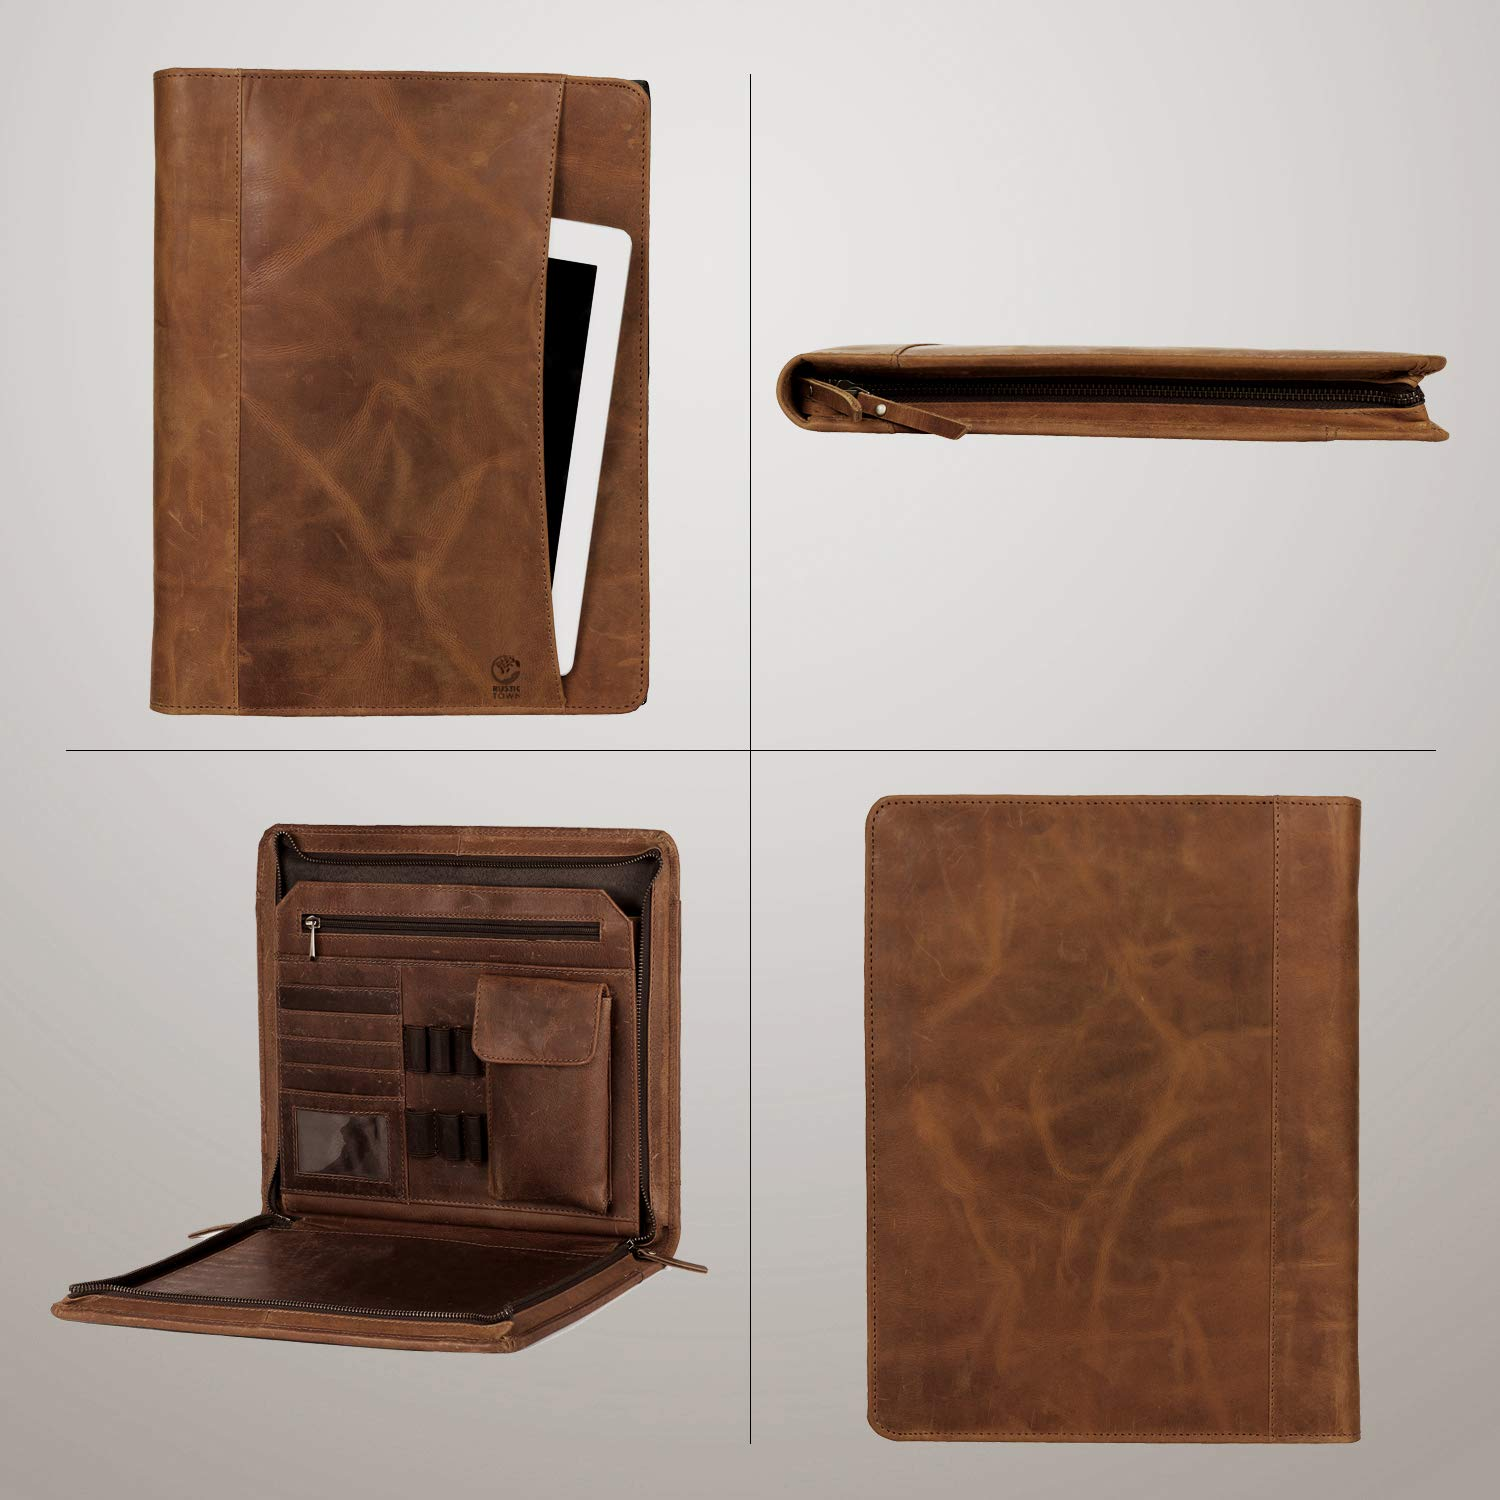 Business Leather Padfolio Leather Portfolio Easy to Carry with A Zippered Closure Professional Organizer Gift for Men /& Women Compartments /& Holders Durable Leather Padfolio Many Slots